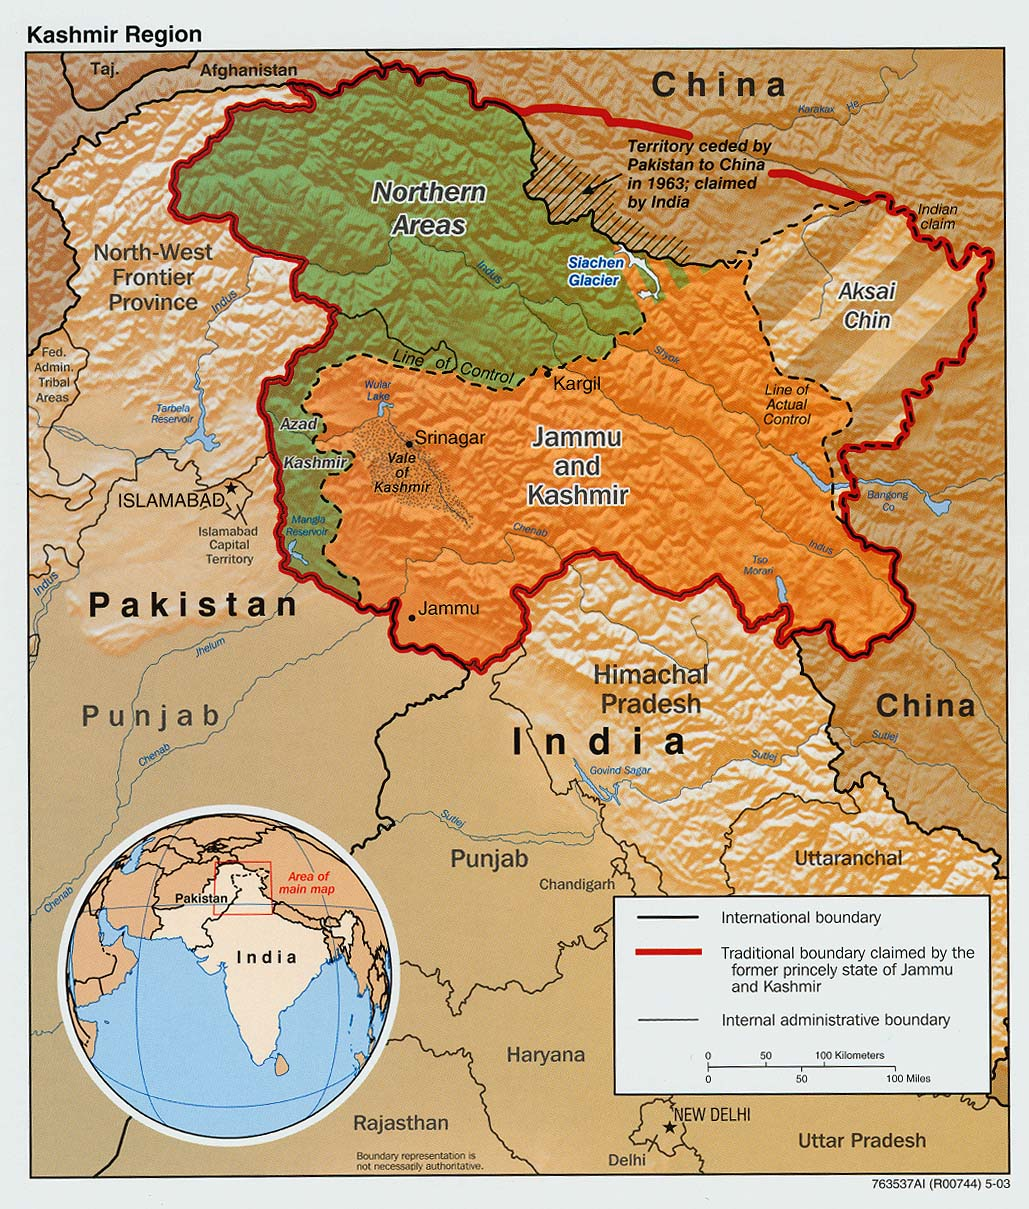 google earth maps free download with Free Kashmir Maps on Sketchup Make en softonic as well Jawa Timur Peta as well 13750939 furthermore Marker moreover Stock Image Timeline Infographic Business Icons Step Step Horizont Horizontal Structure Illustration Image40572261.